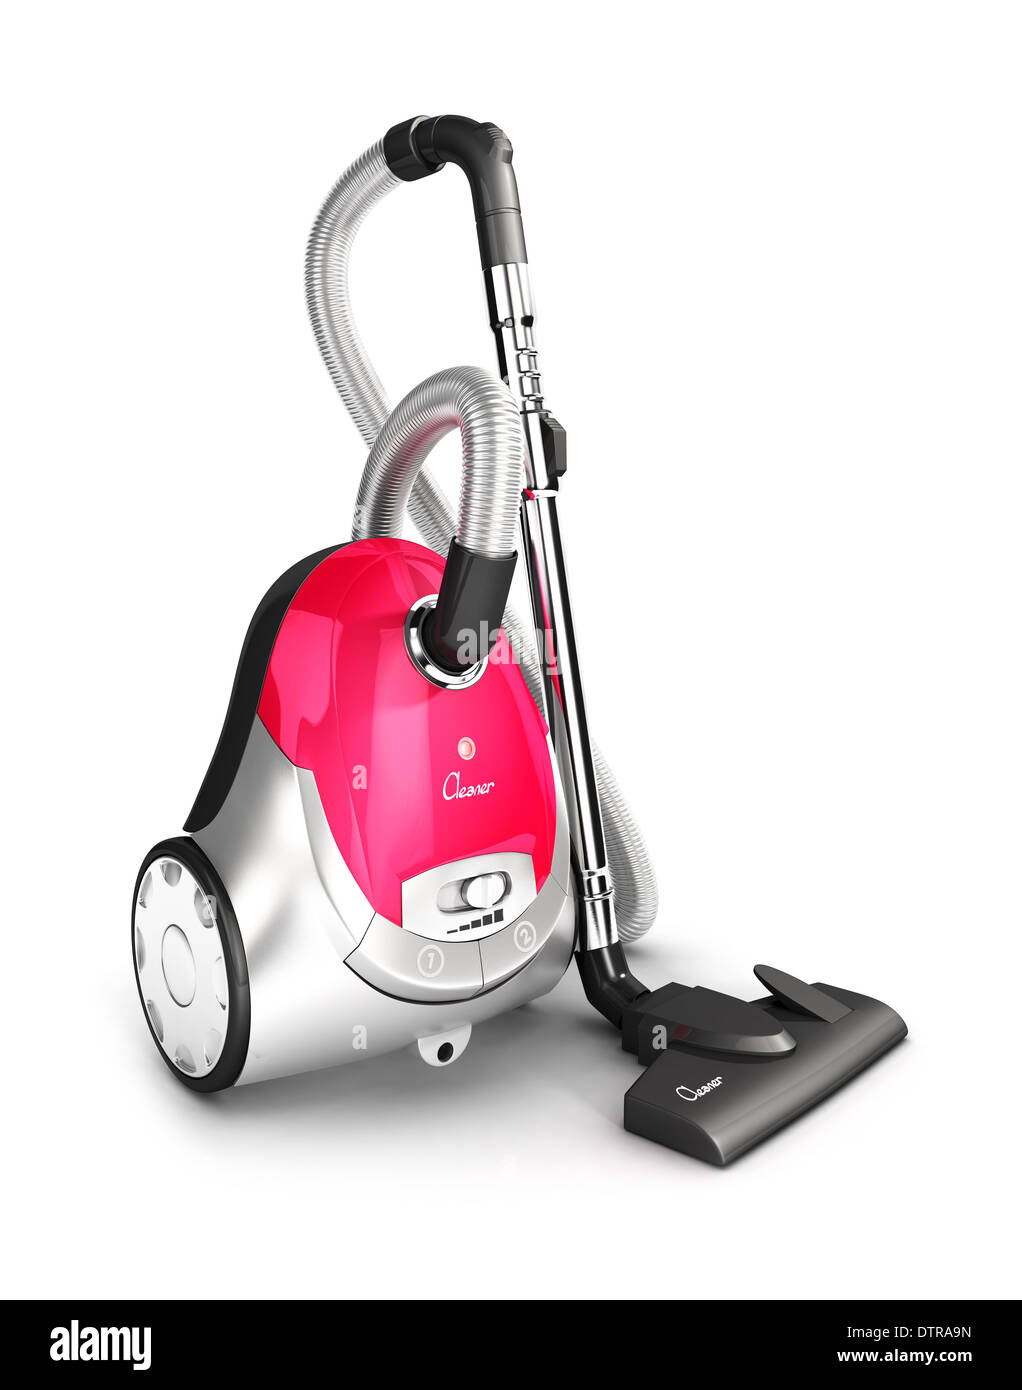 3d vacuum cleaner, isolated white background, 3d image Stock Photo